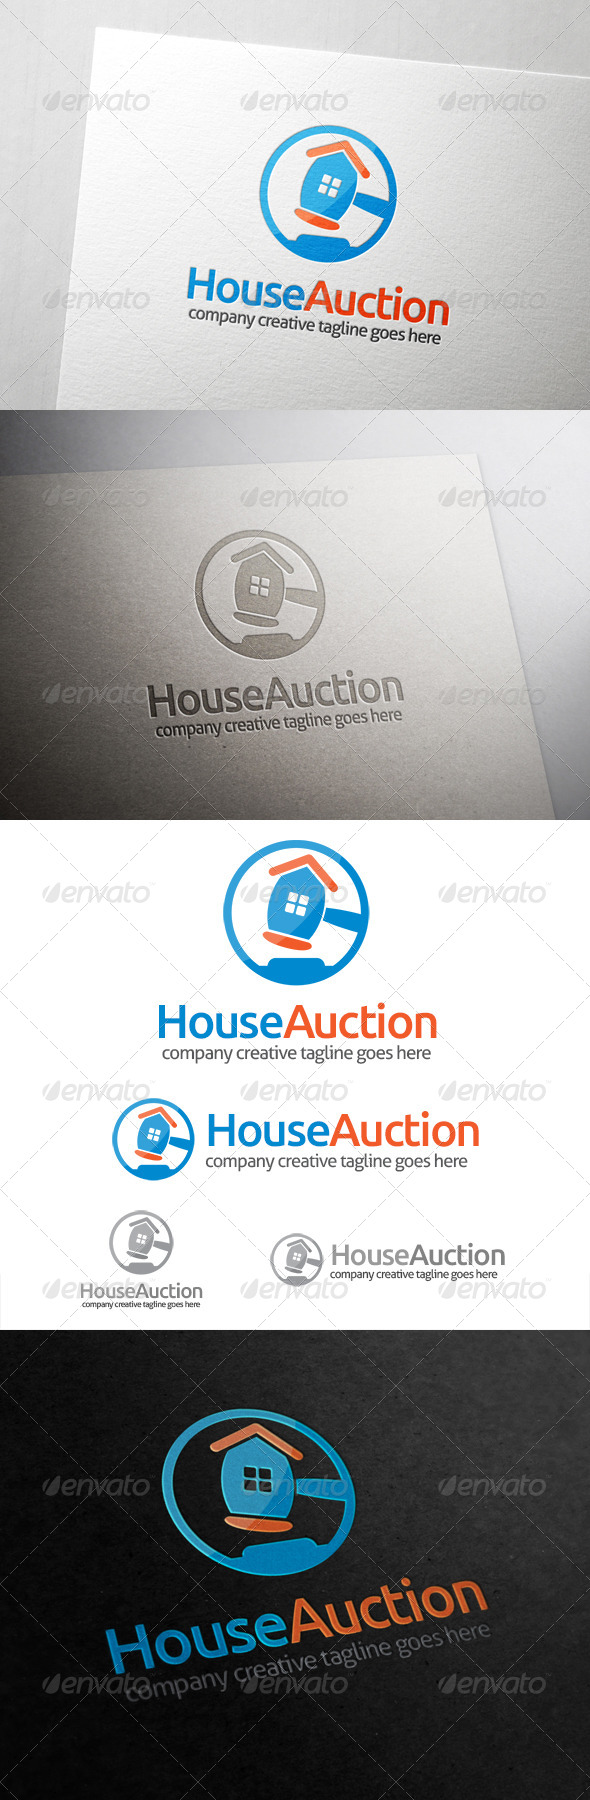 GraphicRiver House Auction Logo 6741686